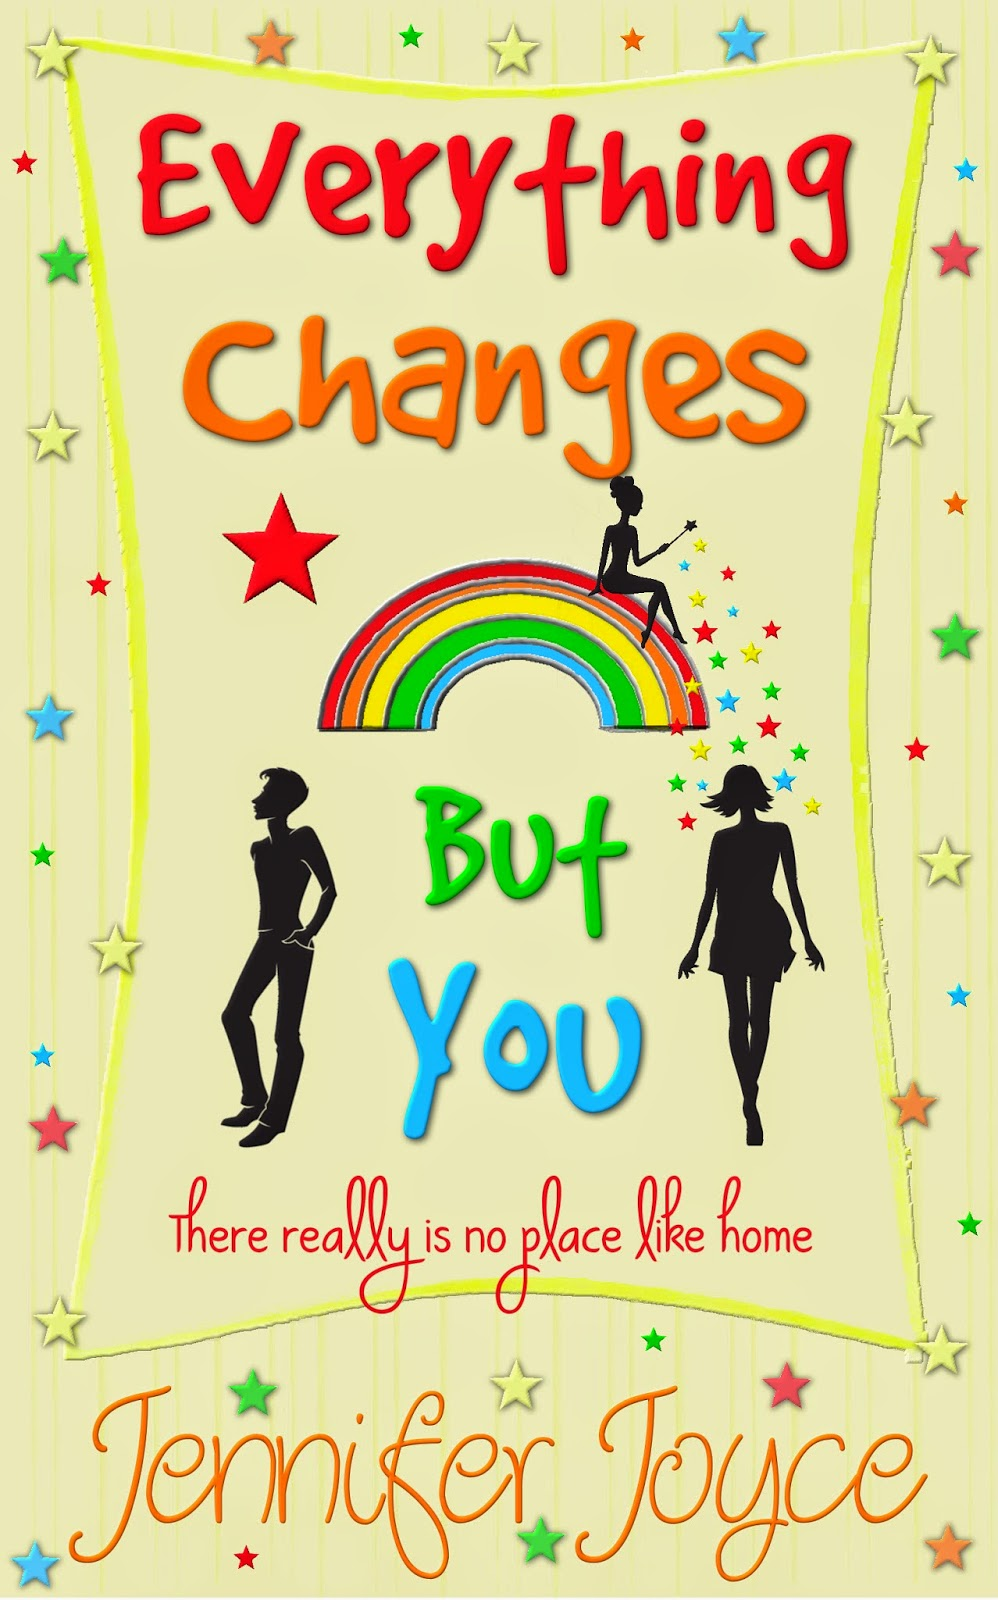 https://www.pinterest.com/jennijoycepins/everything-changes-but-you/